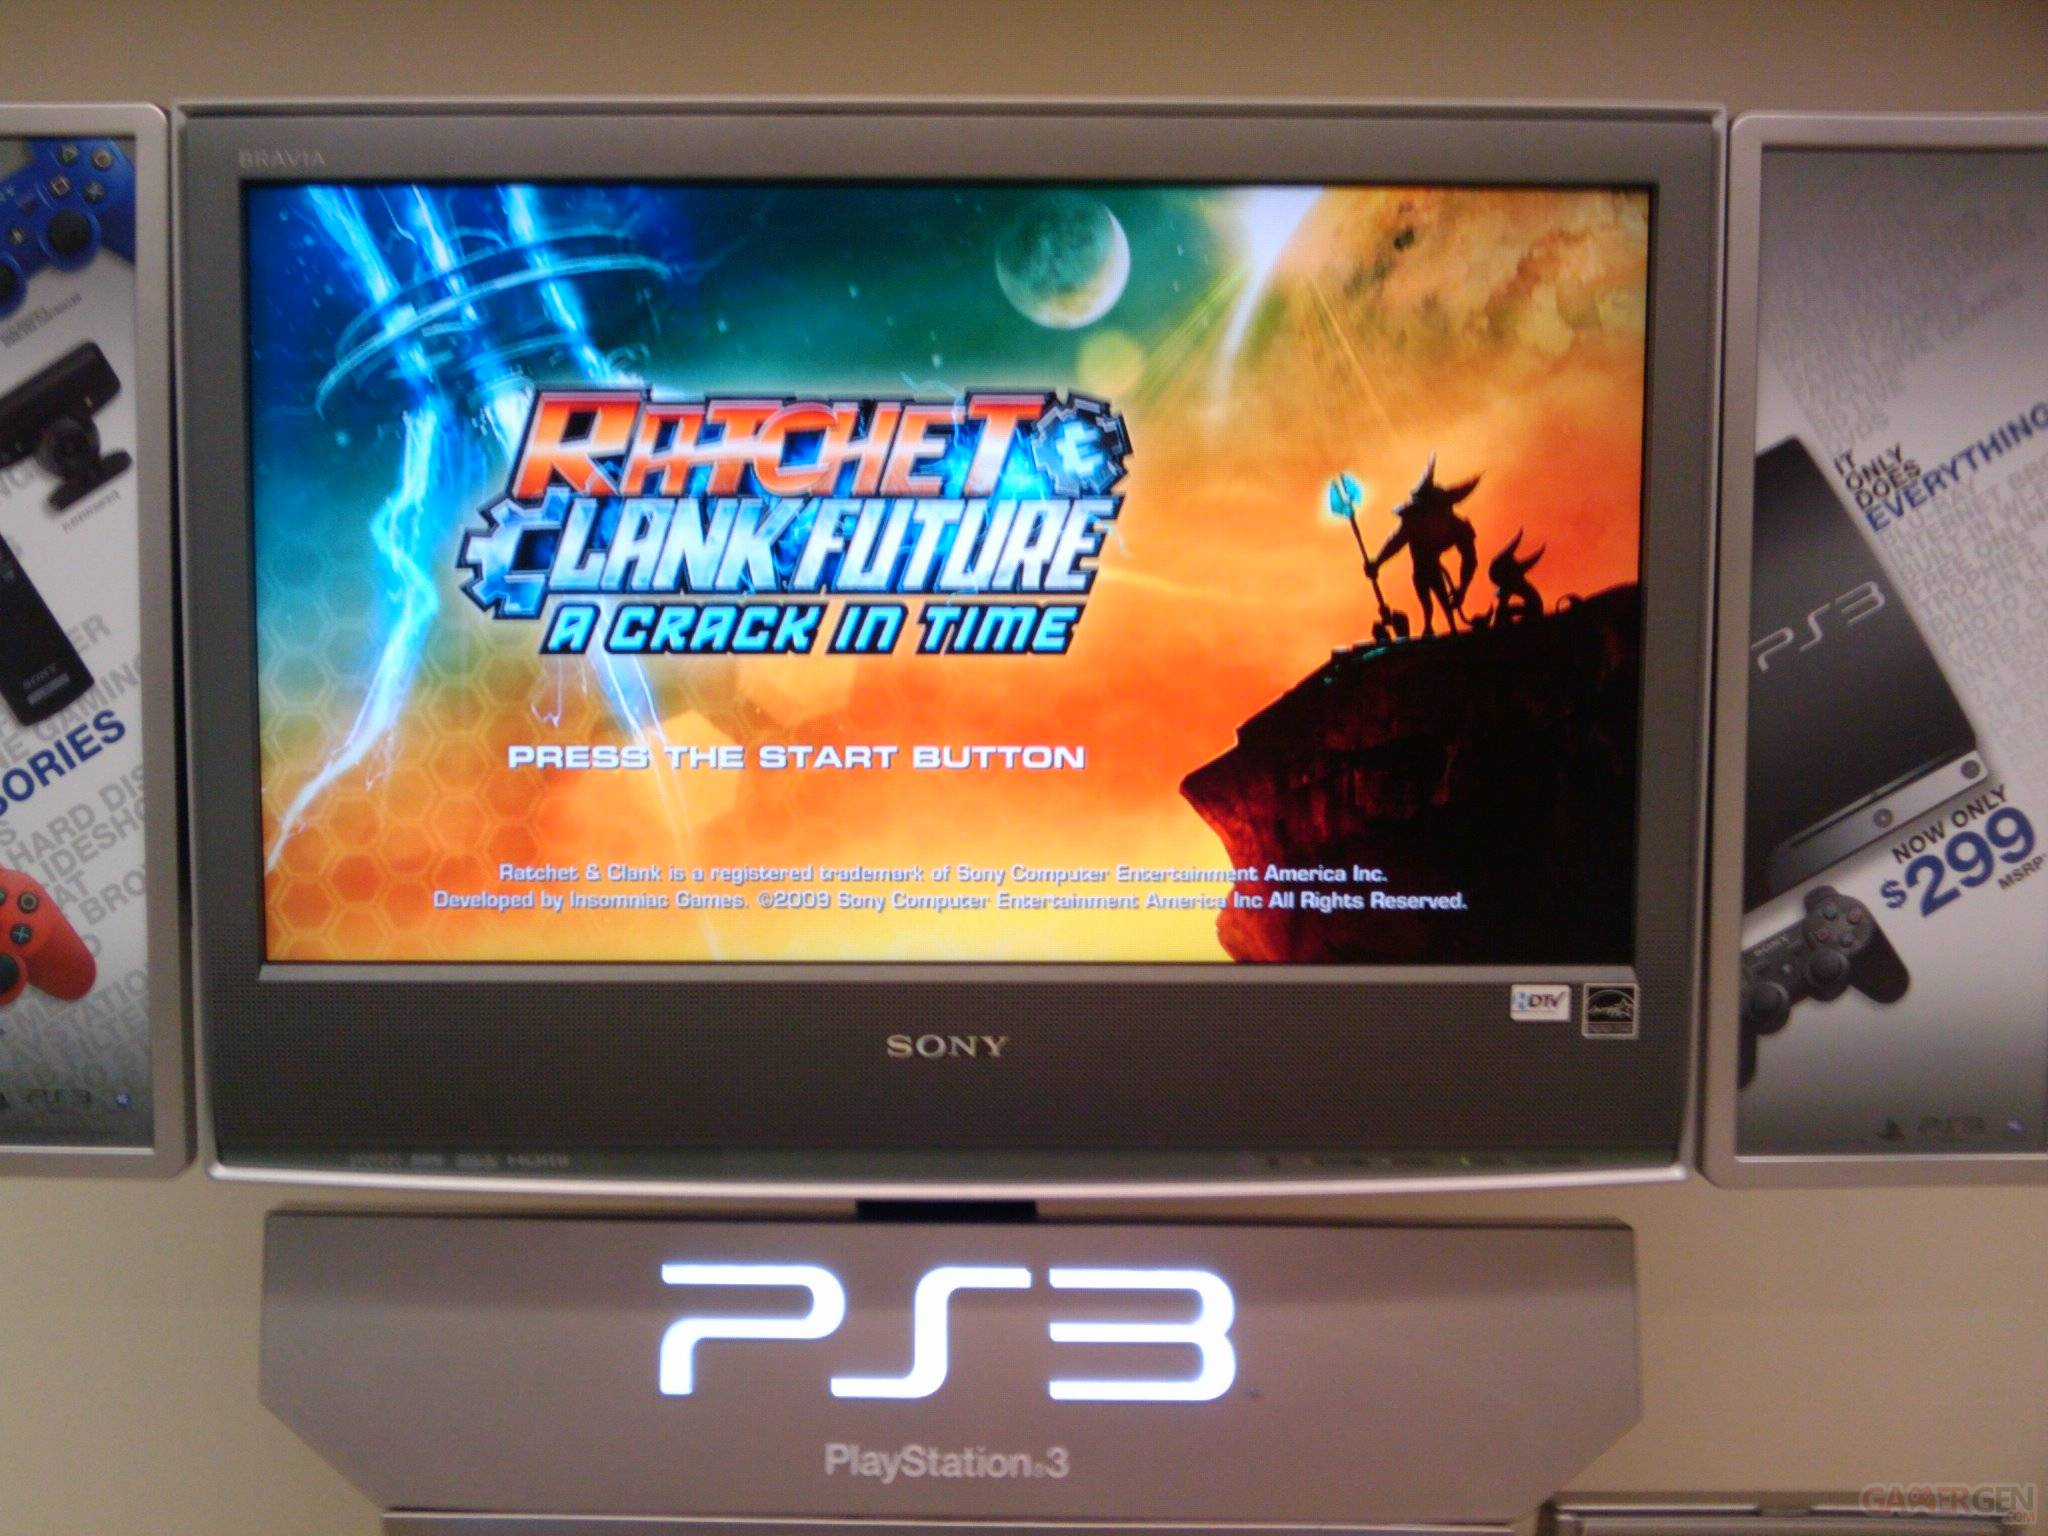 ratchet_clank_future_crack_in_time 200910171f52547